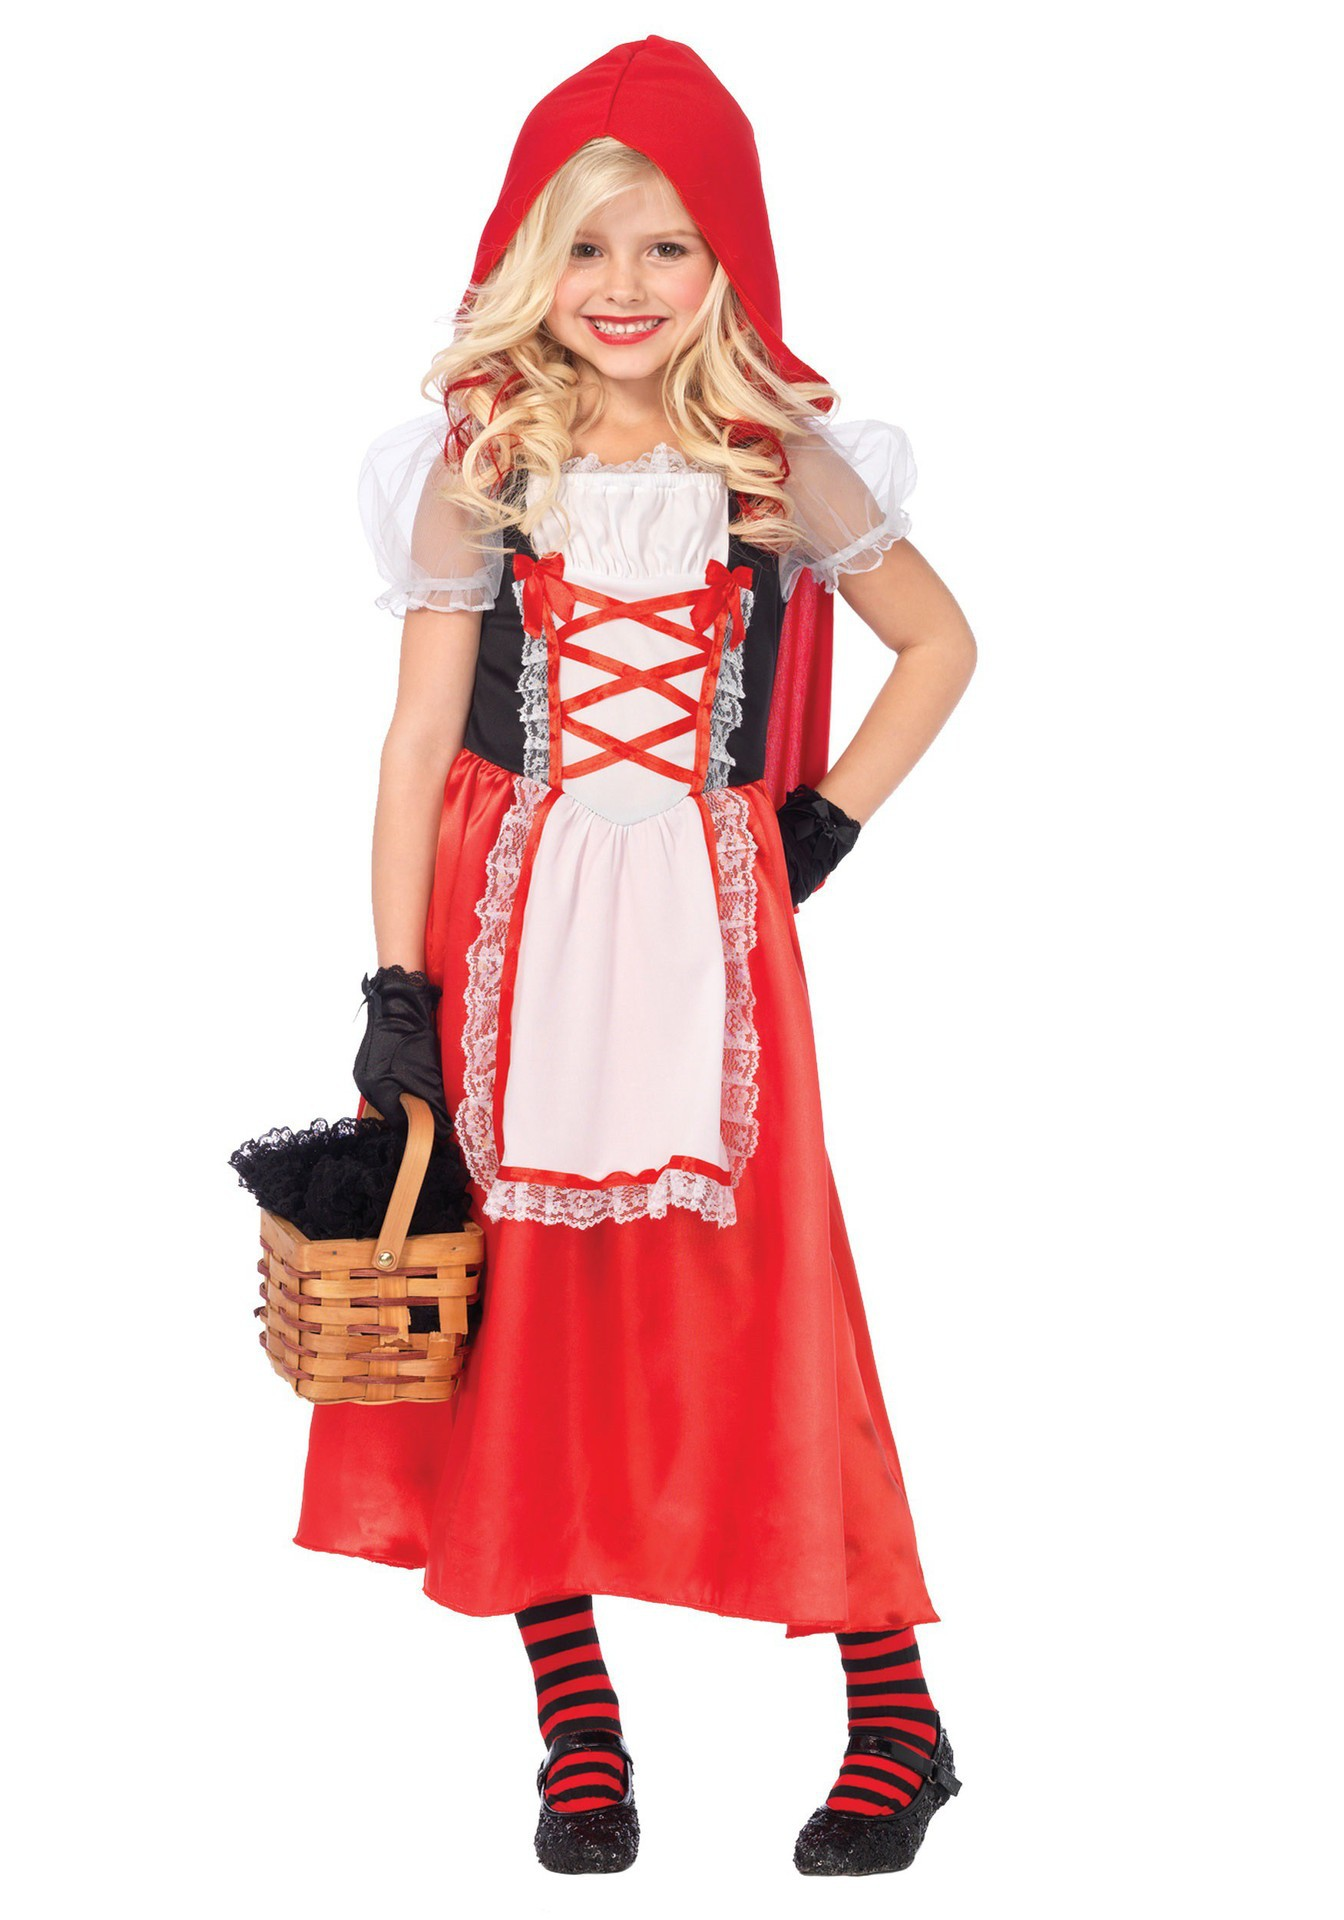 Little Red Riding Hood Costume For Girl Children Kid Fantasia Halloween Party Cosplay Fancy Dress Oktoberfest Child Maid Uniform